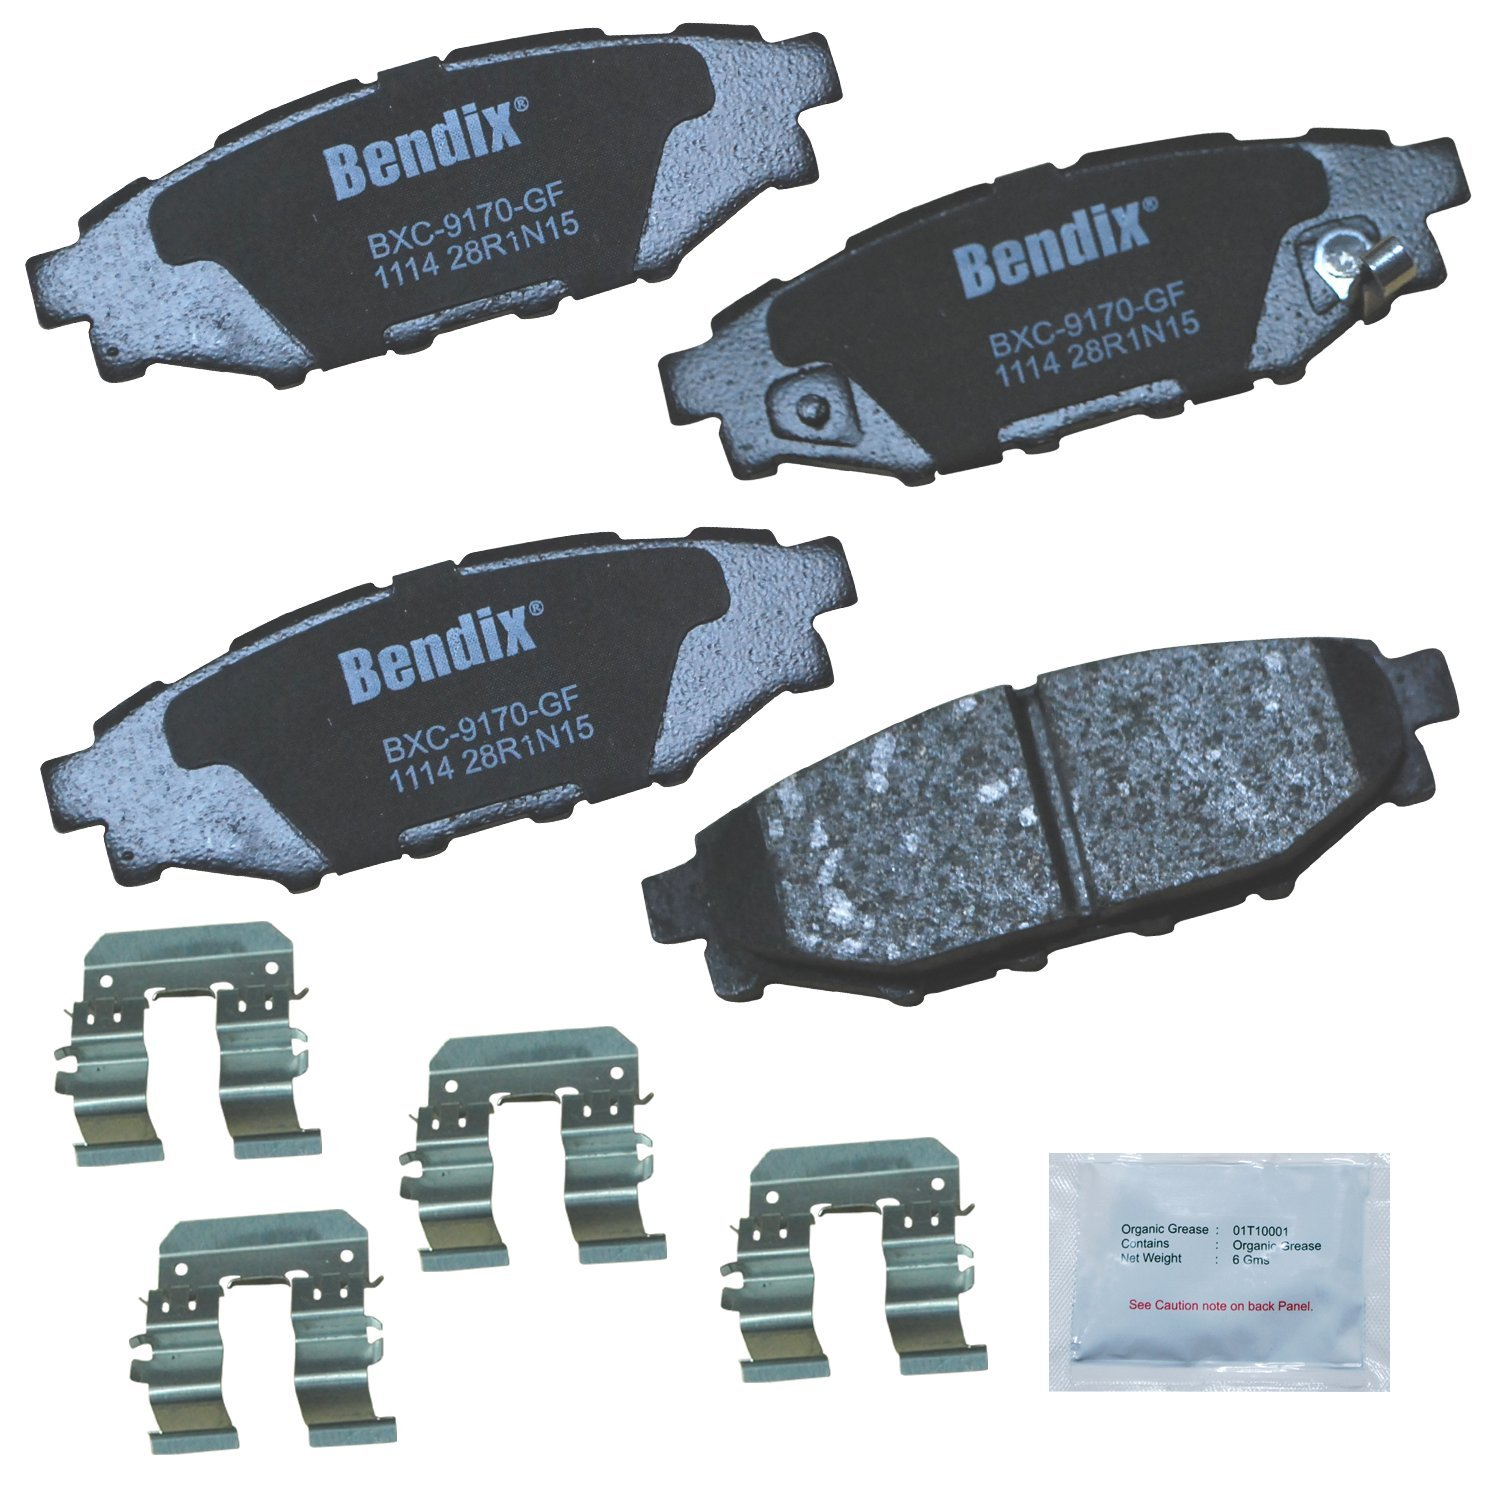 Bendix Premium Copper Free CFC1114 Premium Copper Free Ceramic Brake Pad (with Installation Hardware Rear)